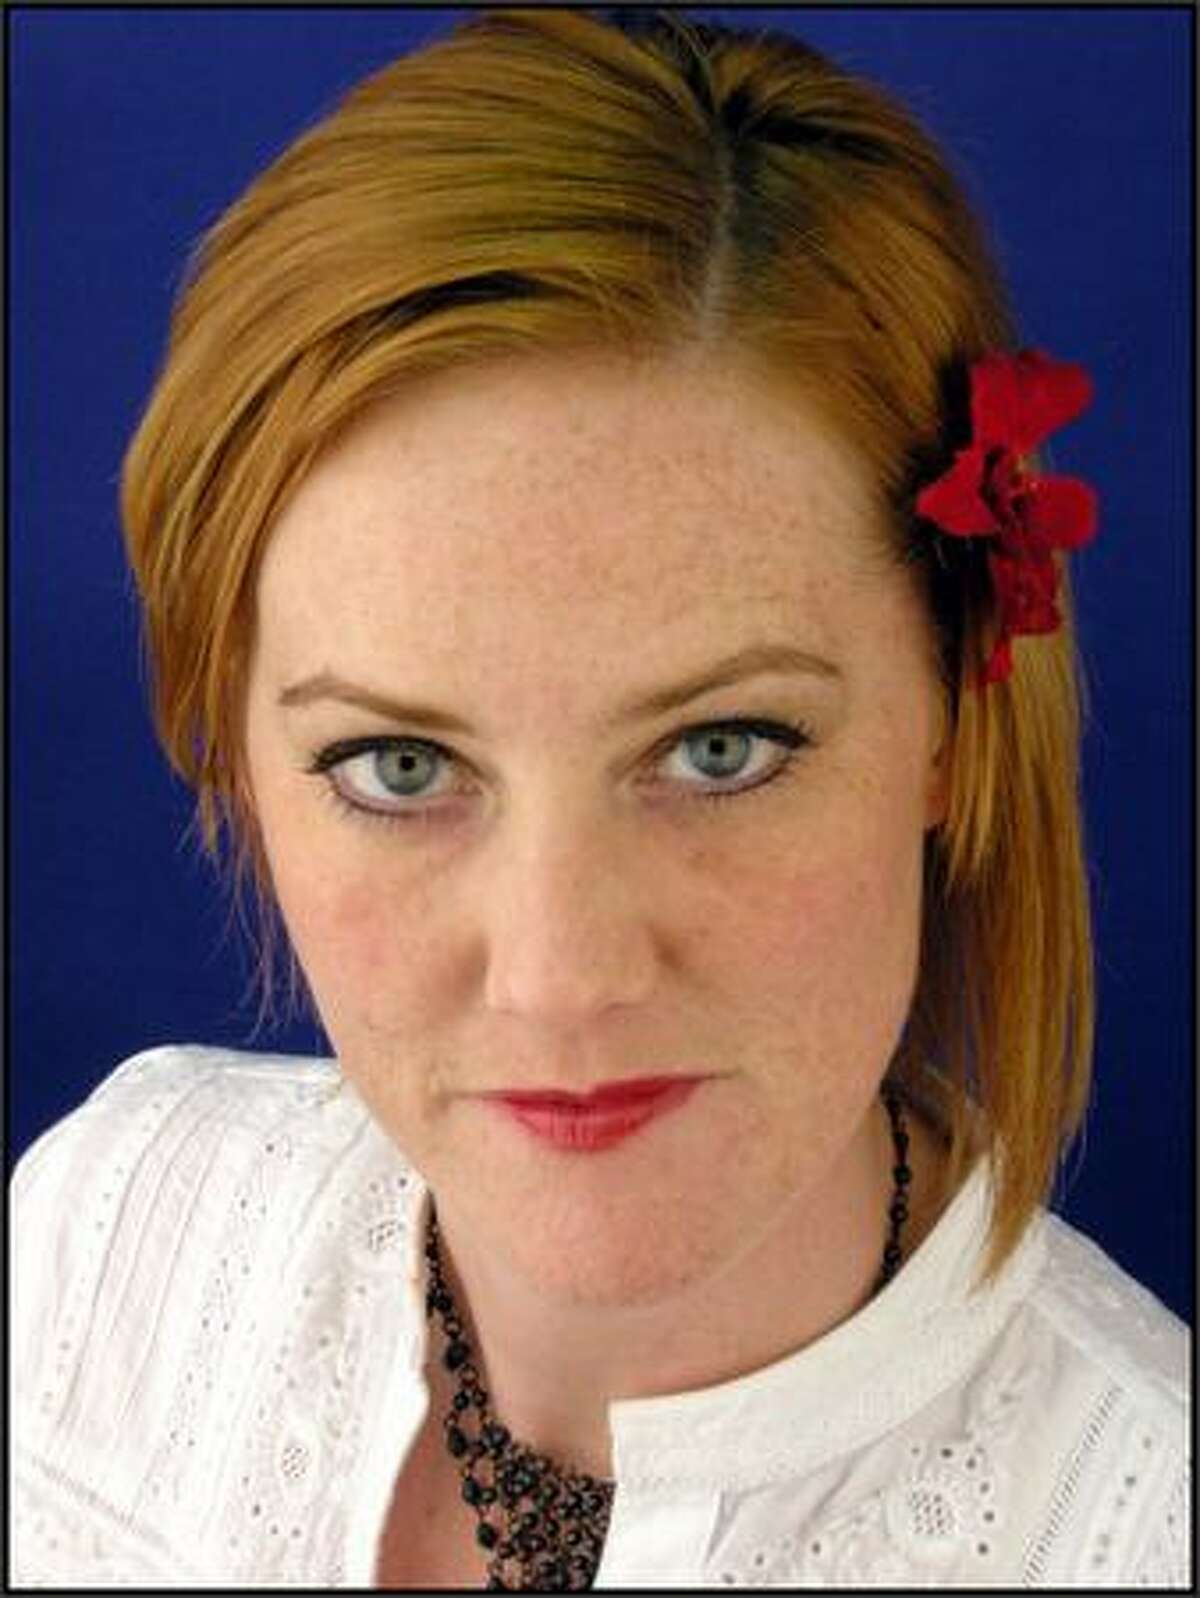 Heather Brooke played a key role in exposing a scandal that has rocked the British government.